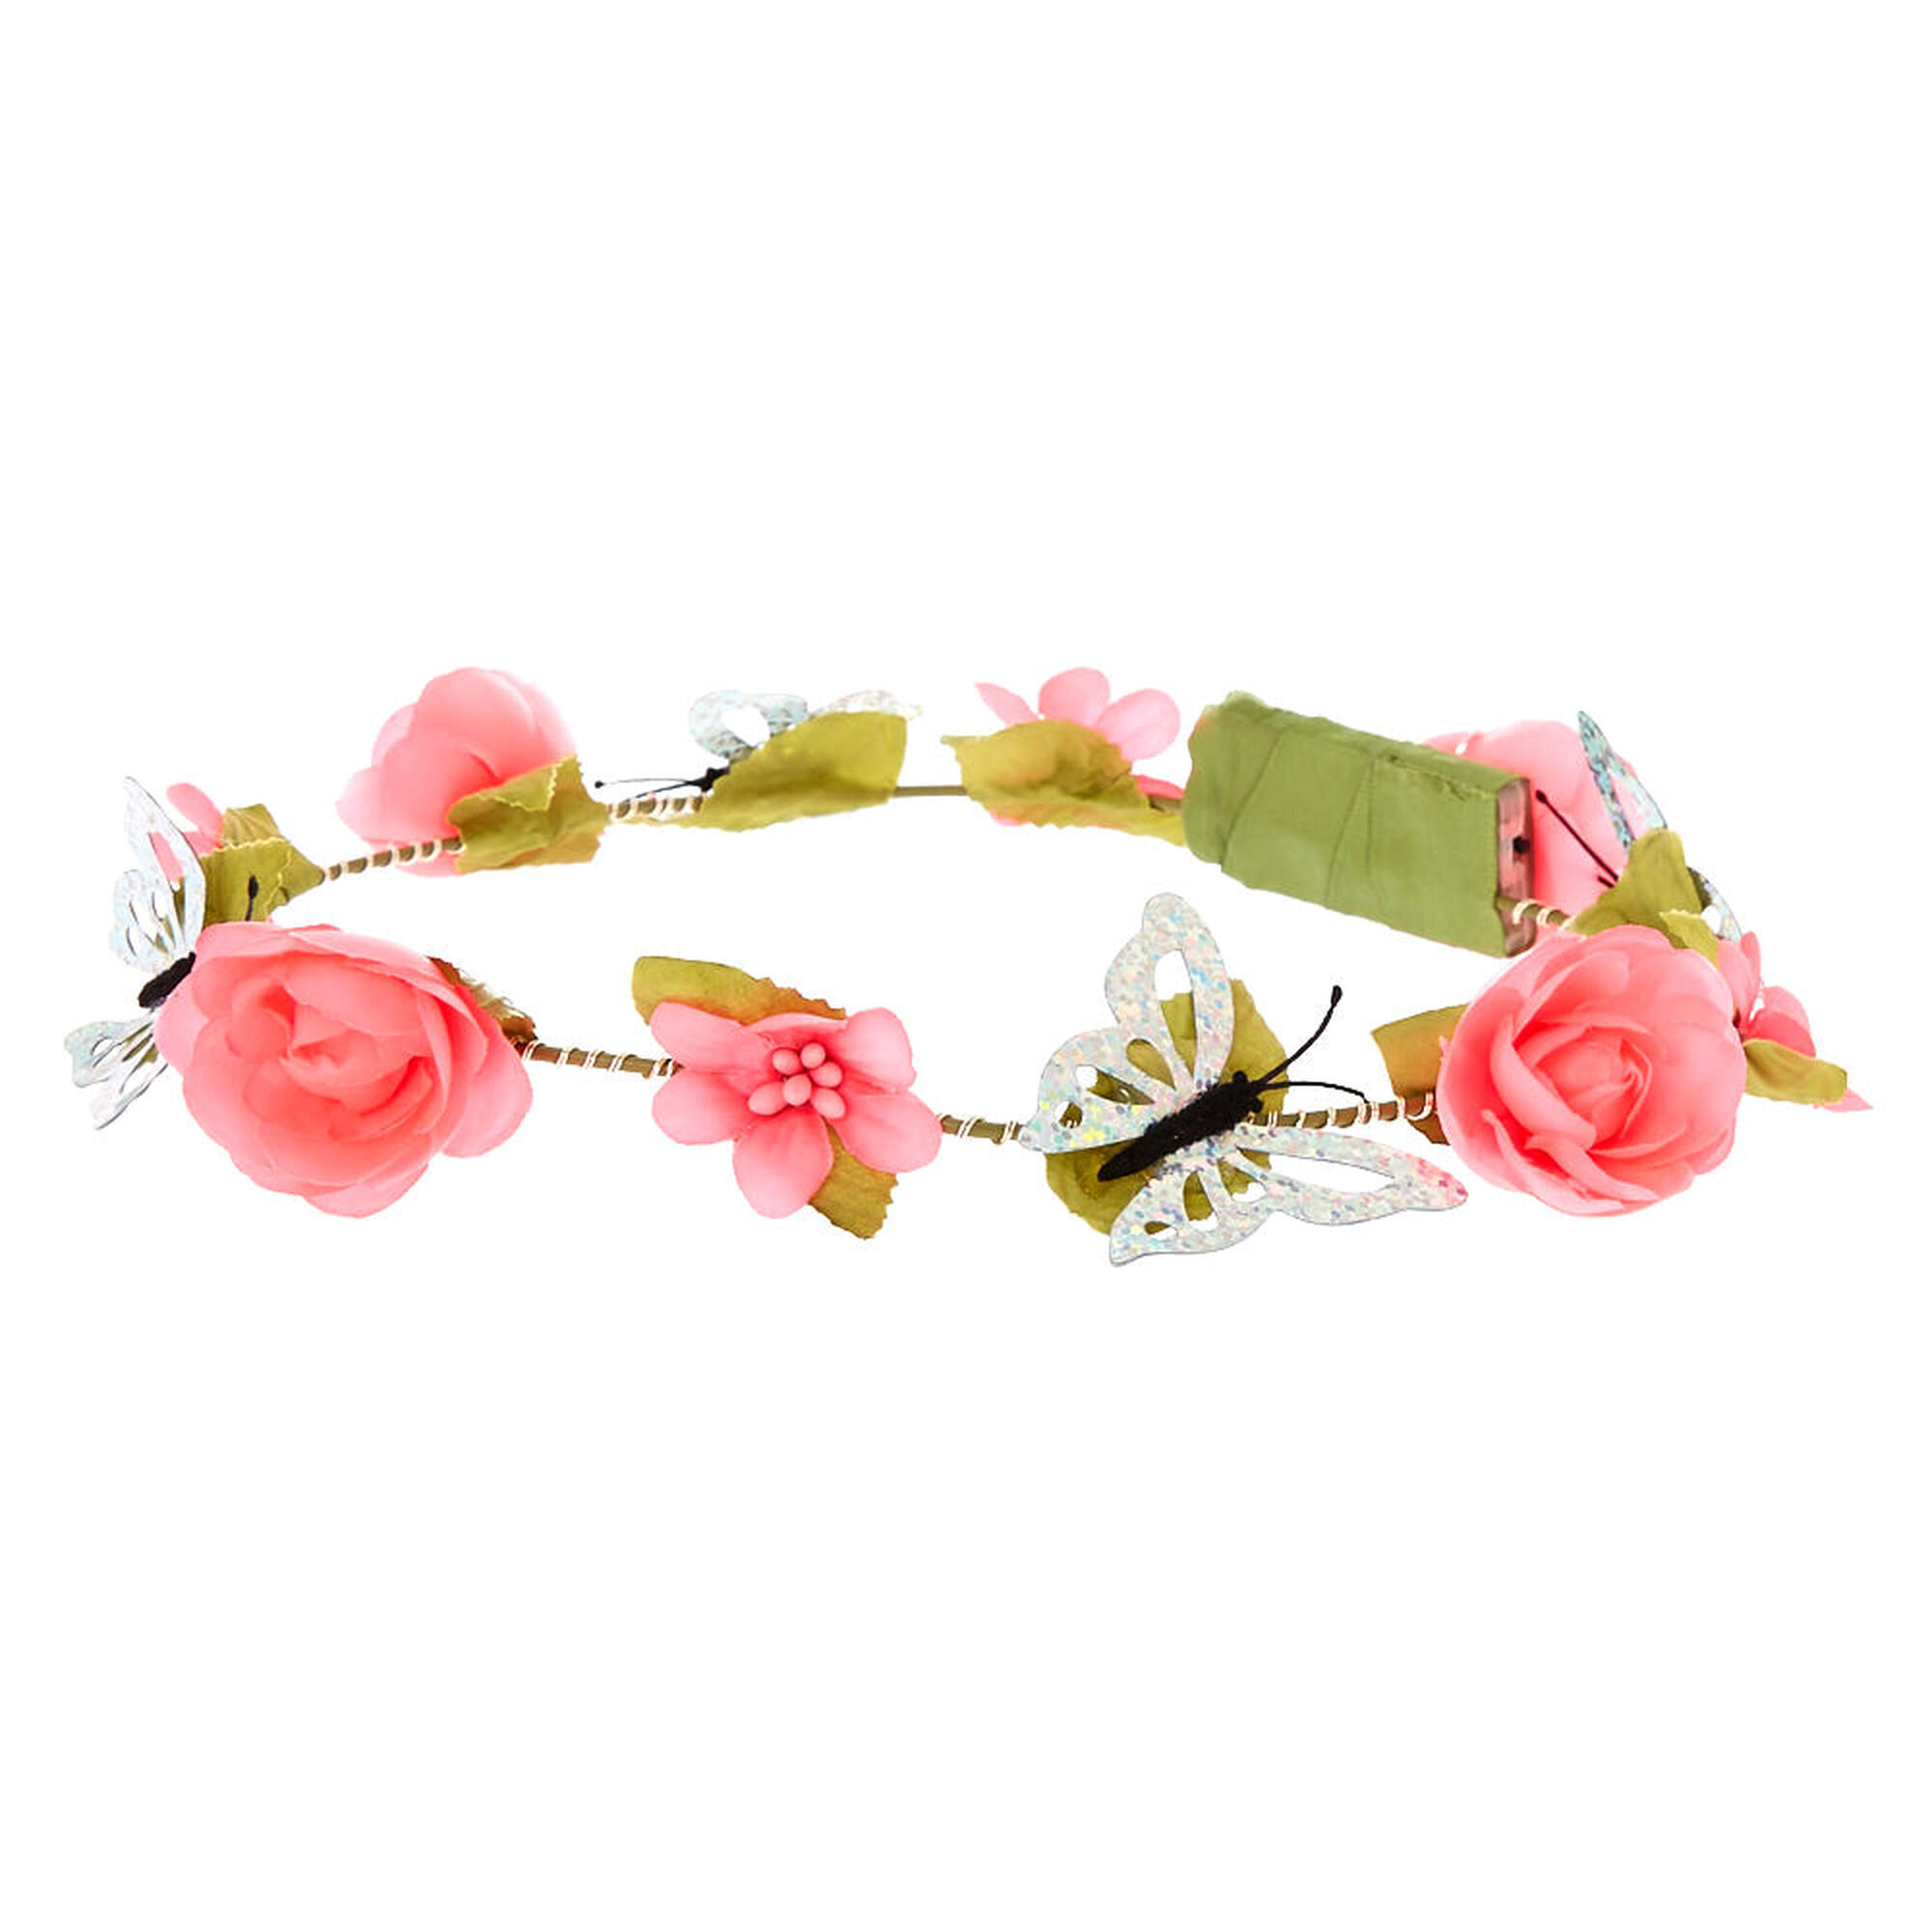 Details about  /Brand New Claire/'s Pink Flower Pearl And Jewel Wired Crown Headwrap Headband